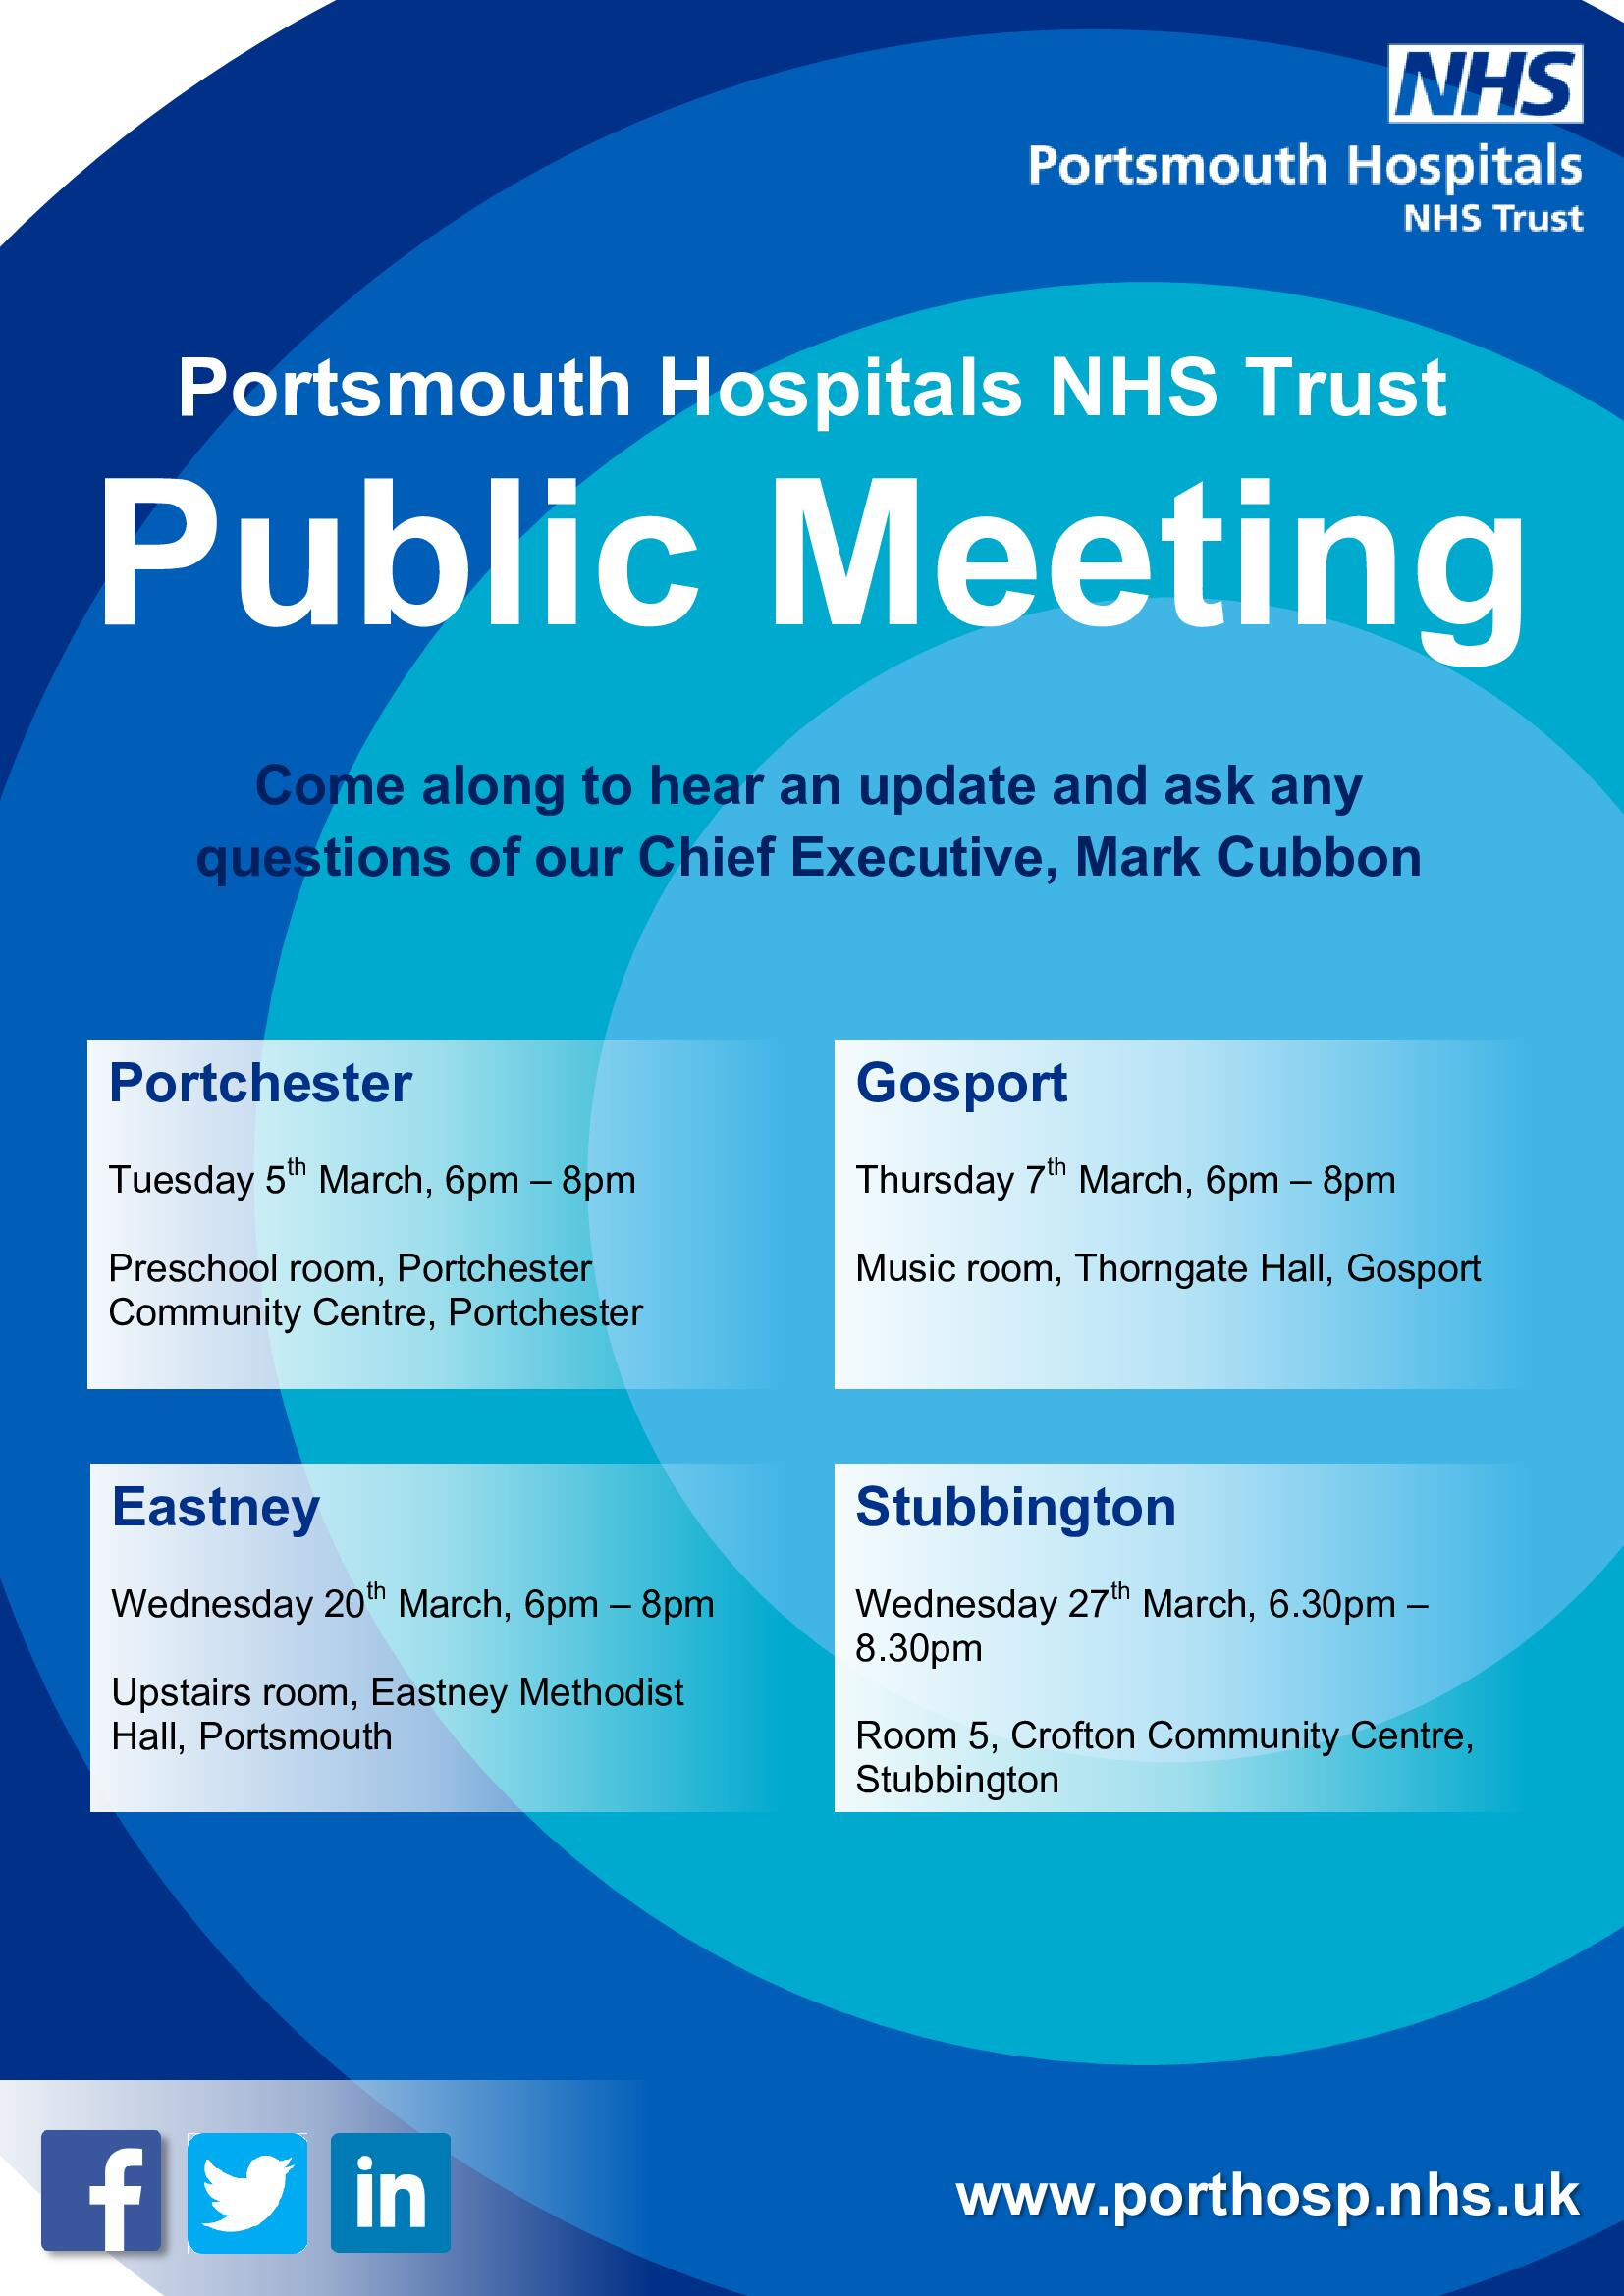 Portsmouth Hospitals NHS Trust Public Meetings in March 2019